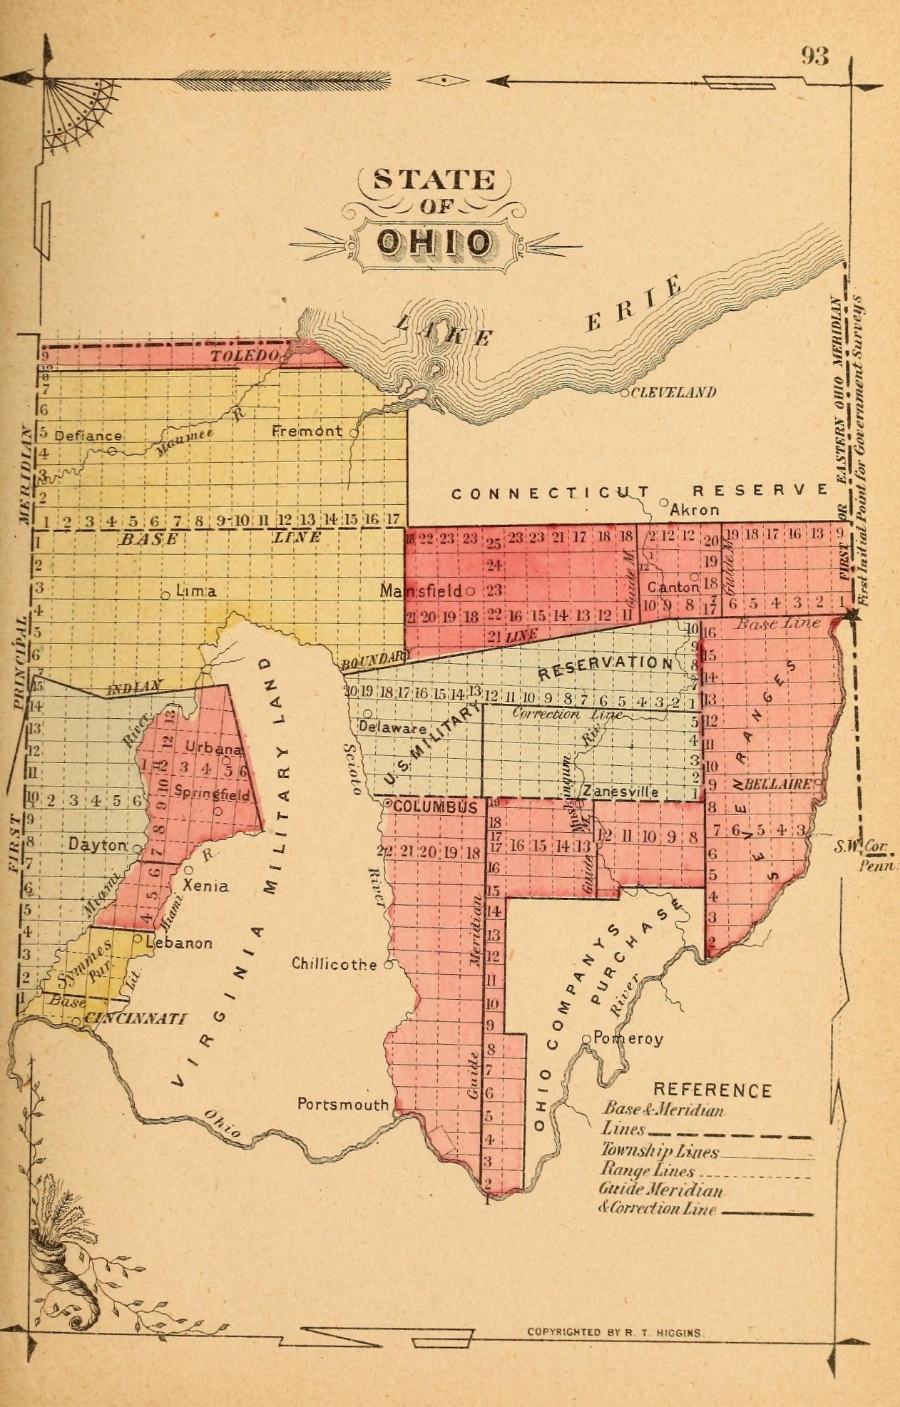 Ohio State Map References, 1887. Image source:  Subdivisions of the Public Lands ,1887,  p. 93 (derived from  Library of Congress ) by Jerome S. Higgins is licensed under  Public Domain Mark 1.0